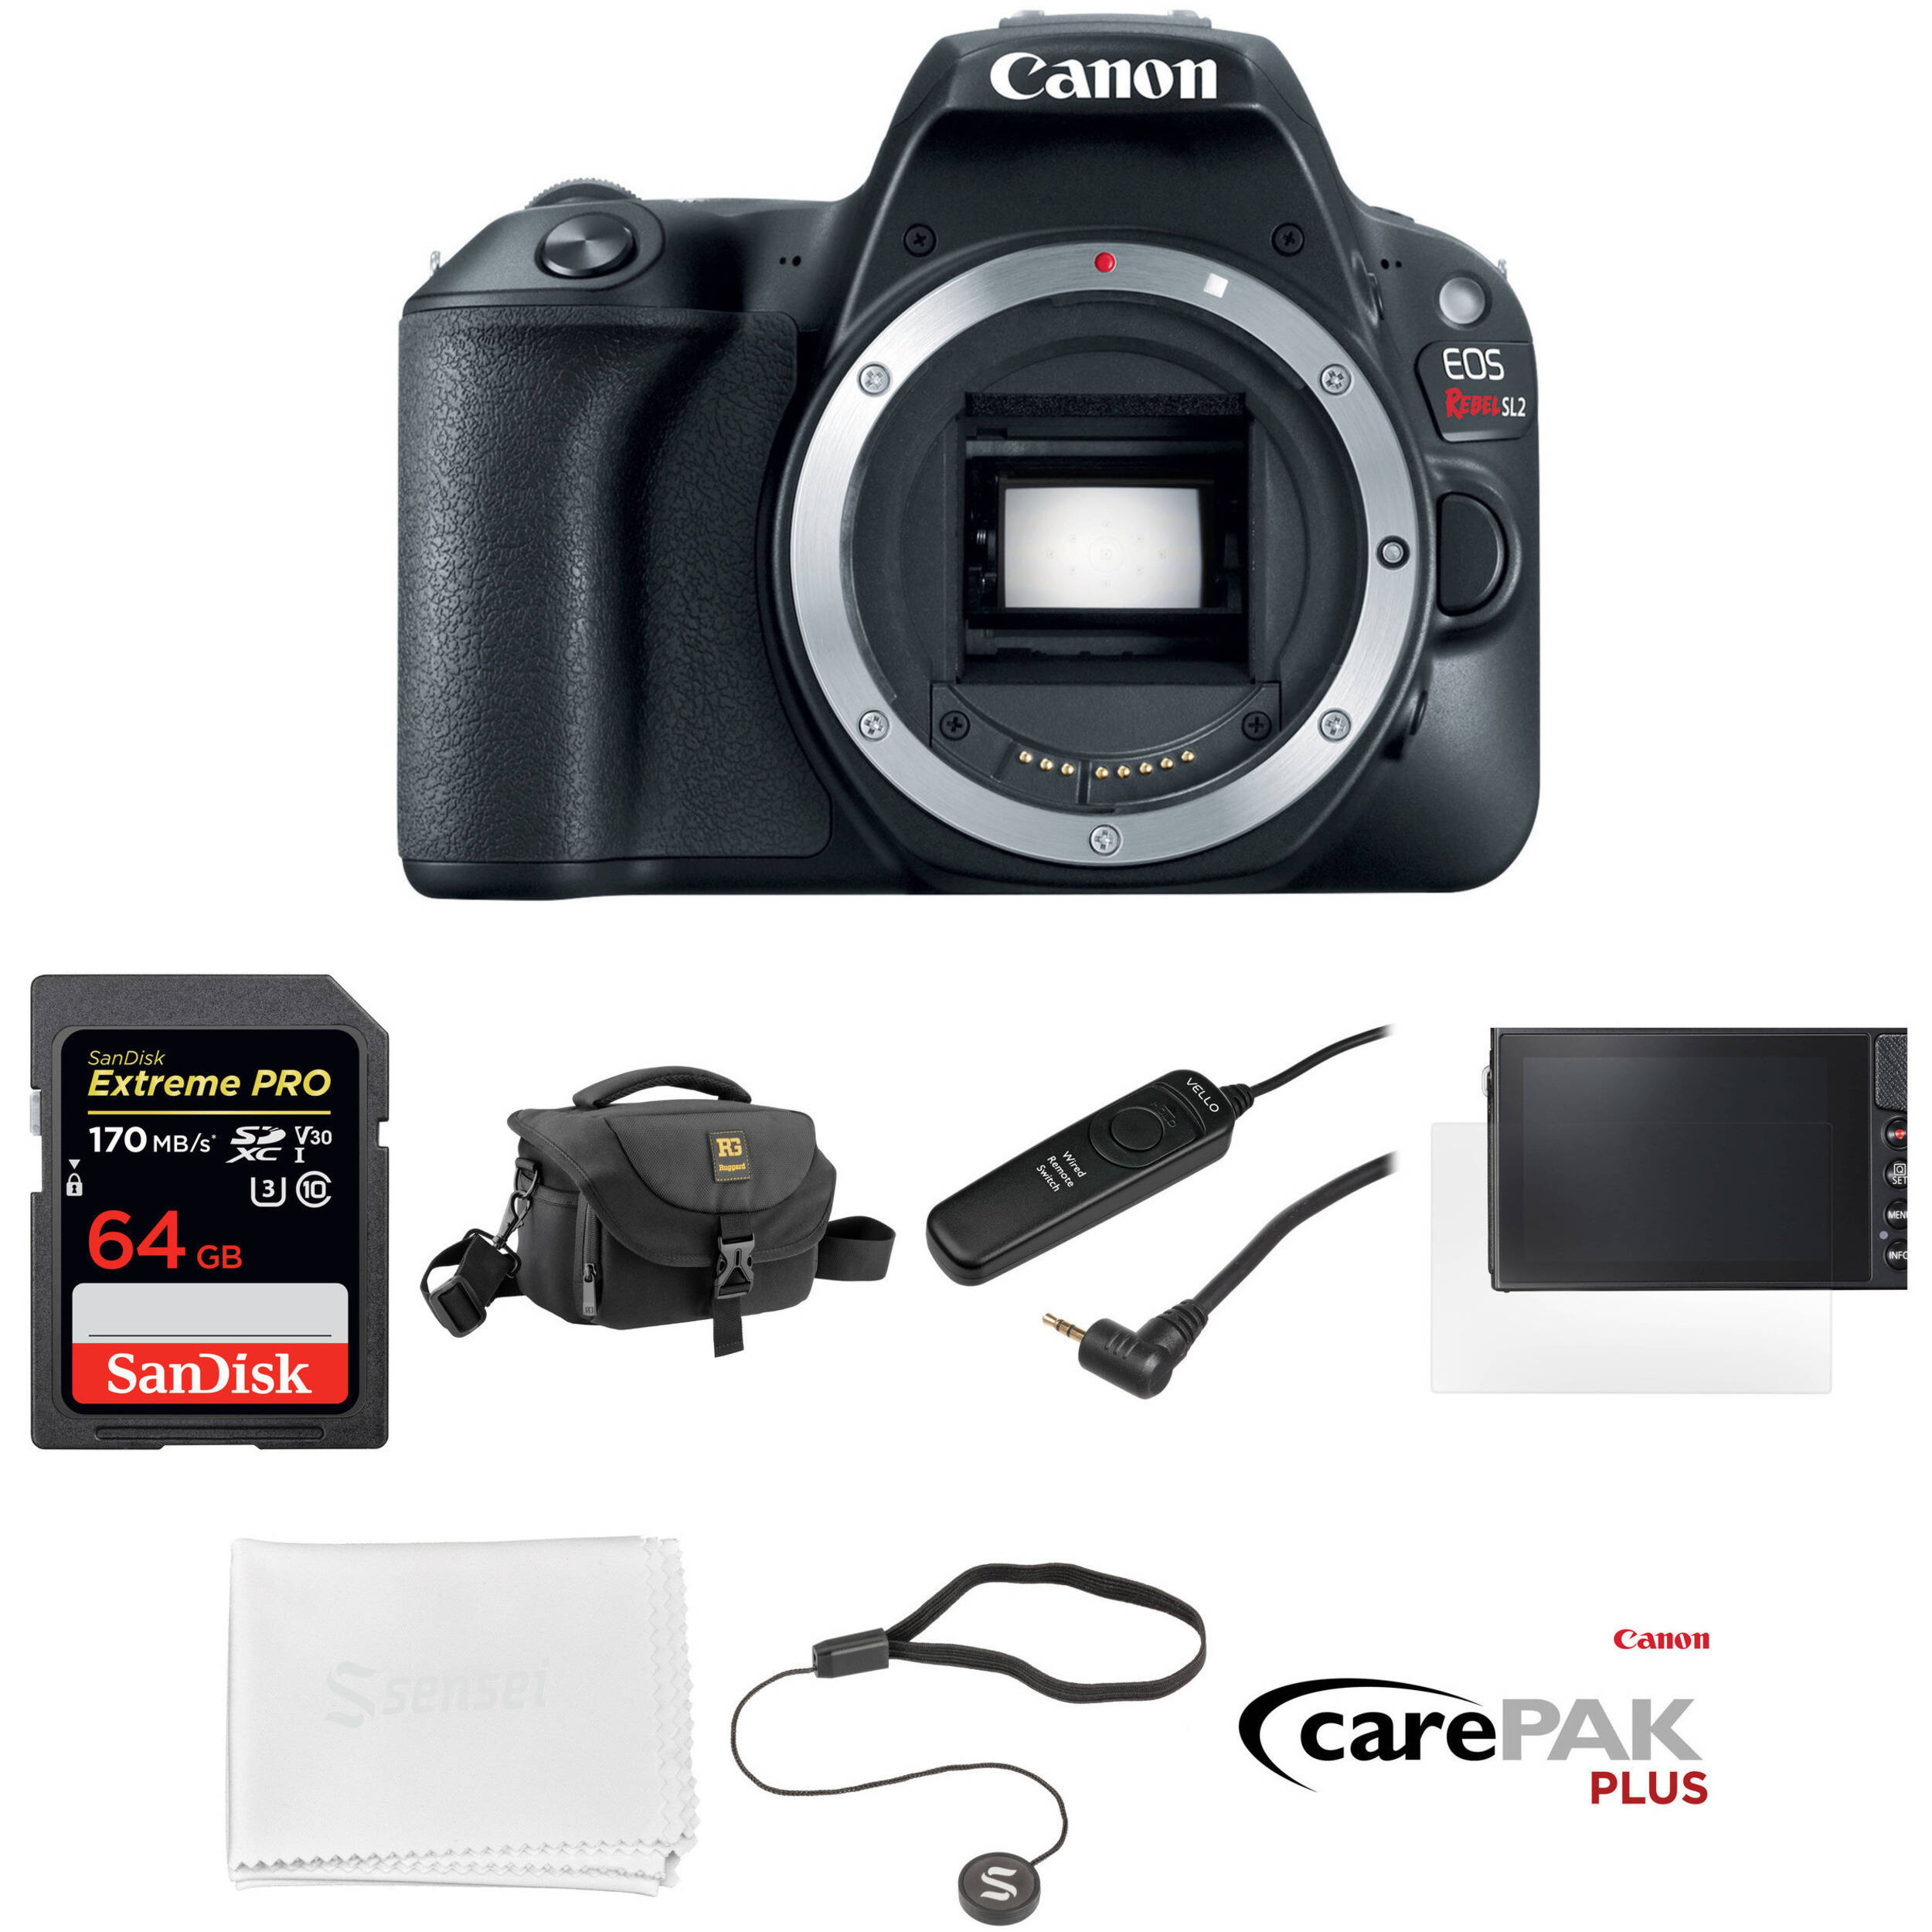 Canon Eos Rebel Sl2 Dslr Camera Body Deluxe Kit Bh Photo Video 760d Only Wifi